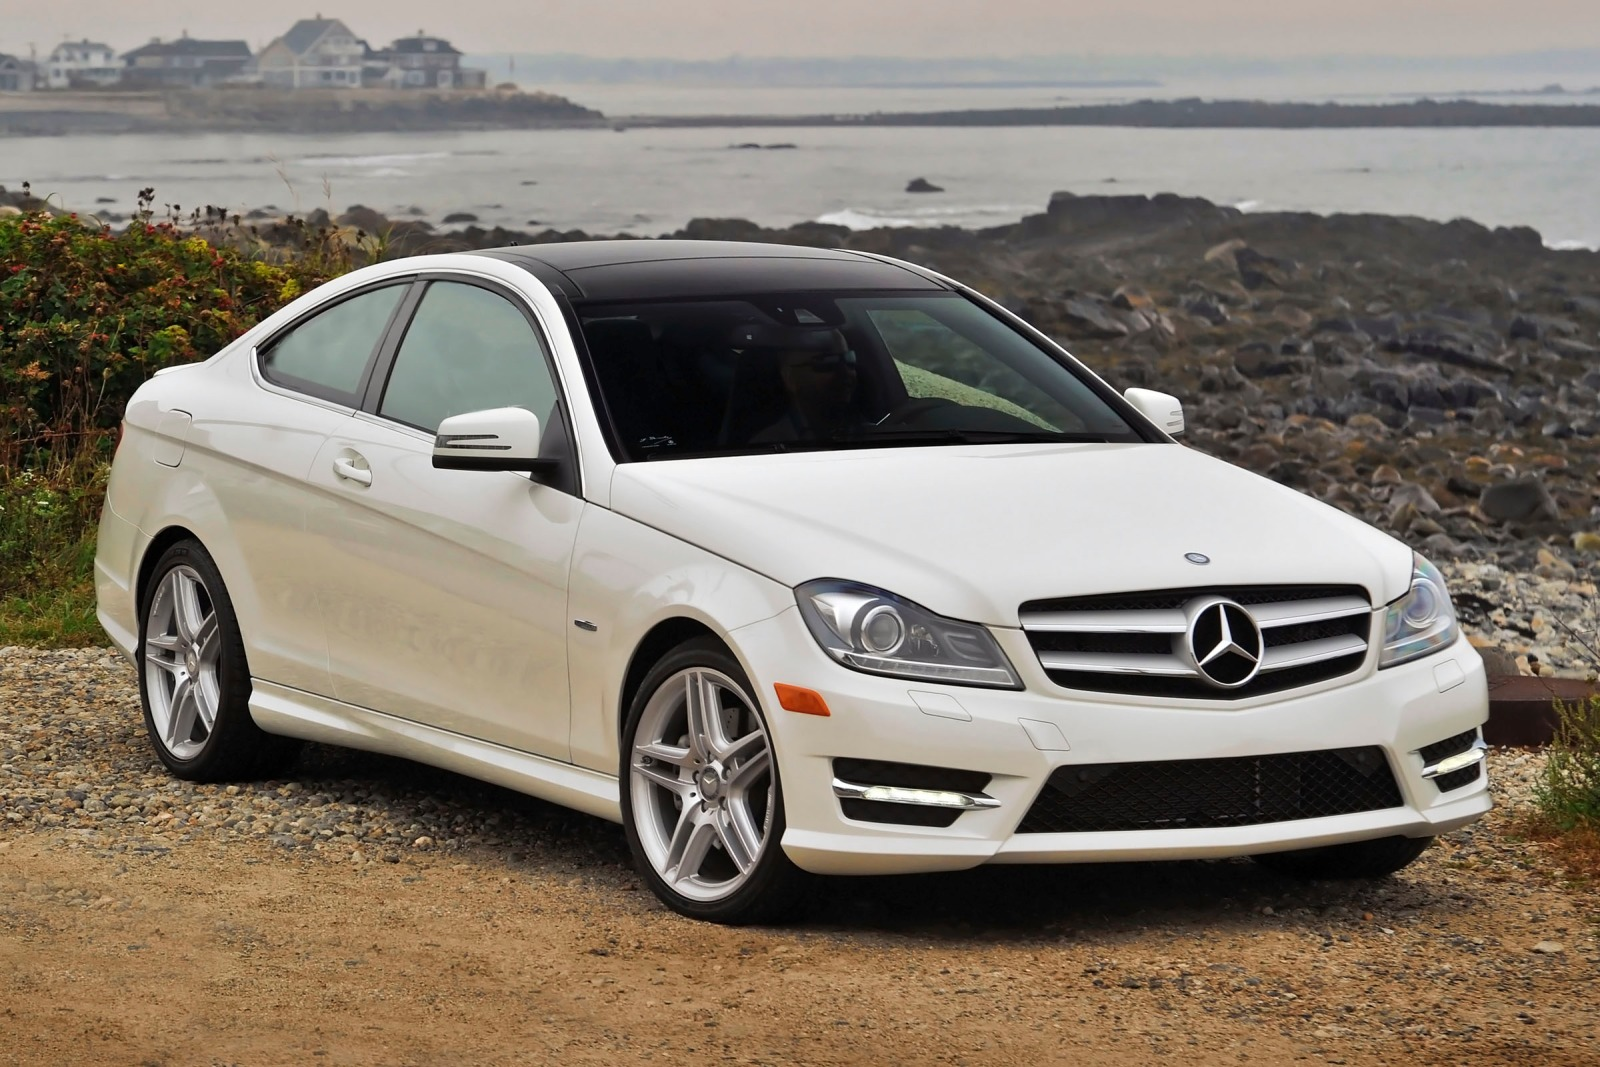 2012 mercedes benz c class information and photos zombiedrive. Black Bedroom Furniture Sets. Home Design Ideas